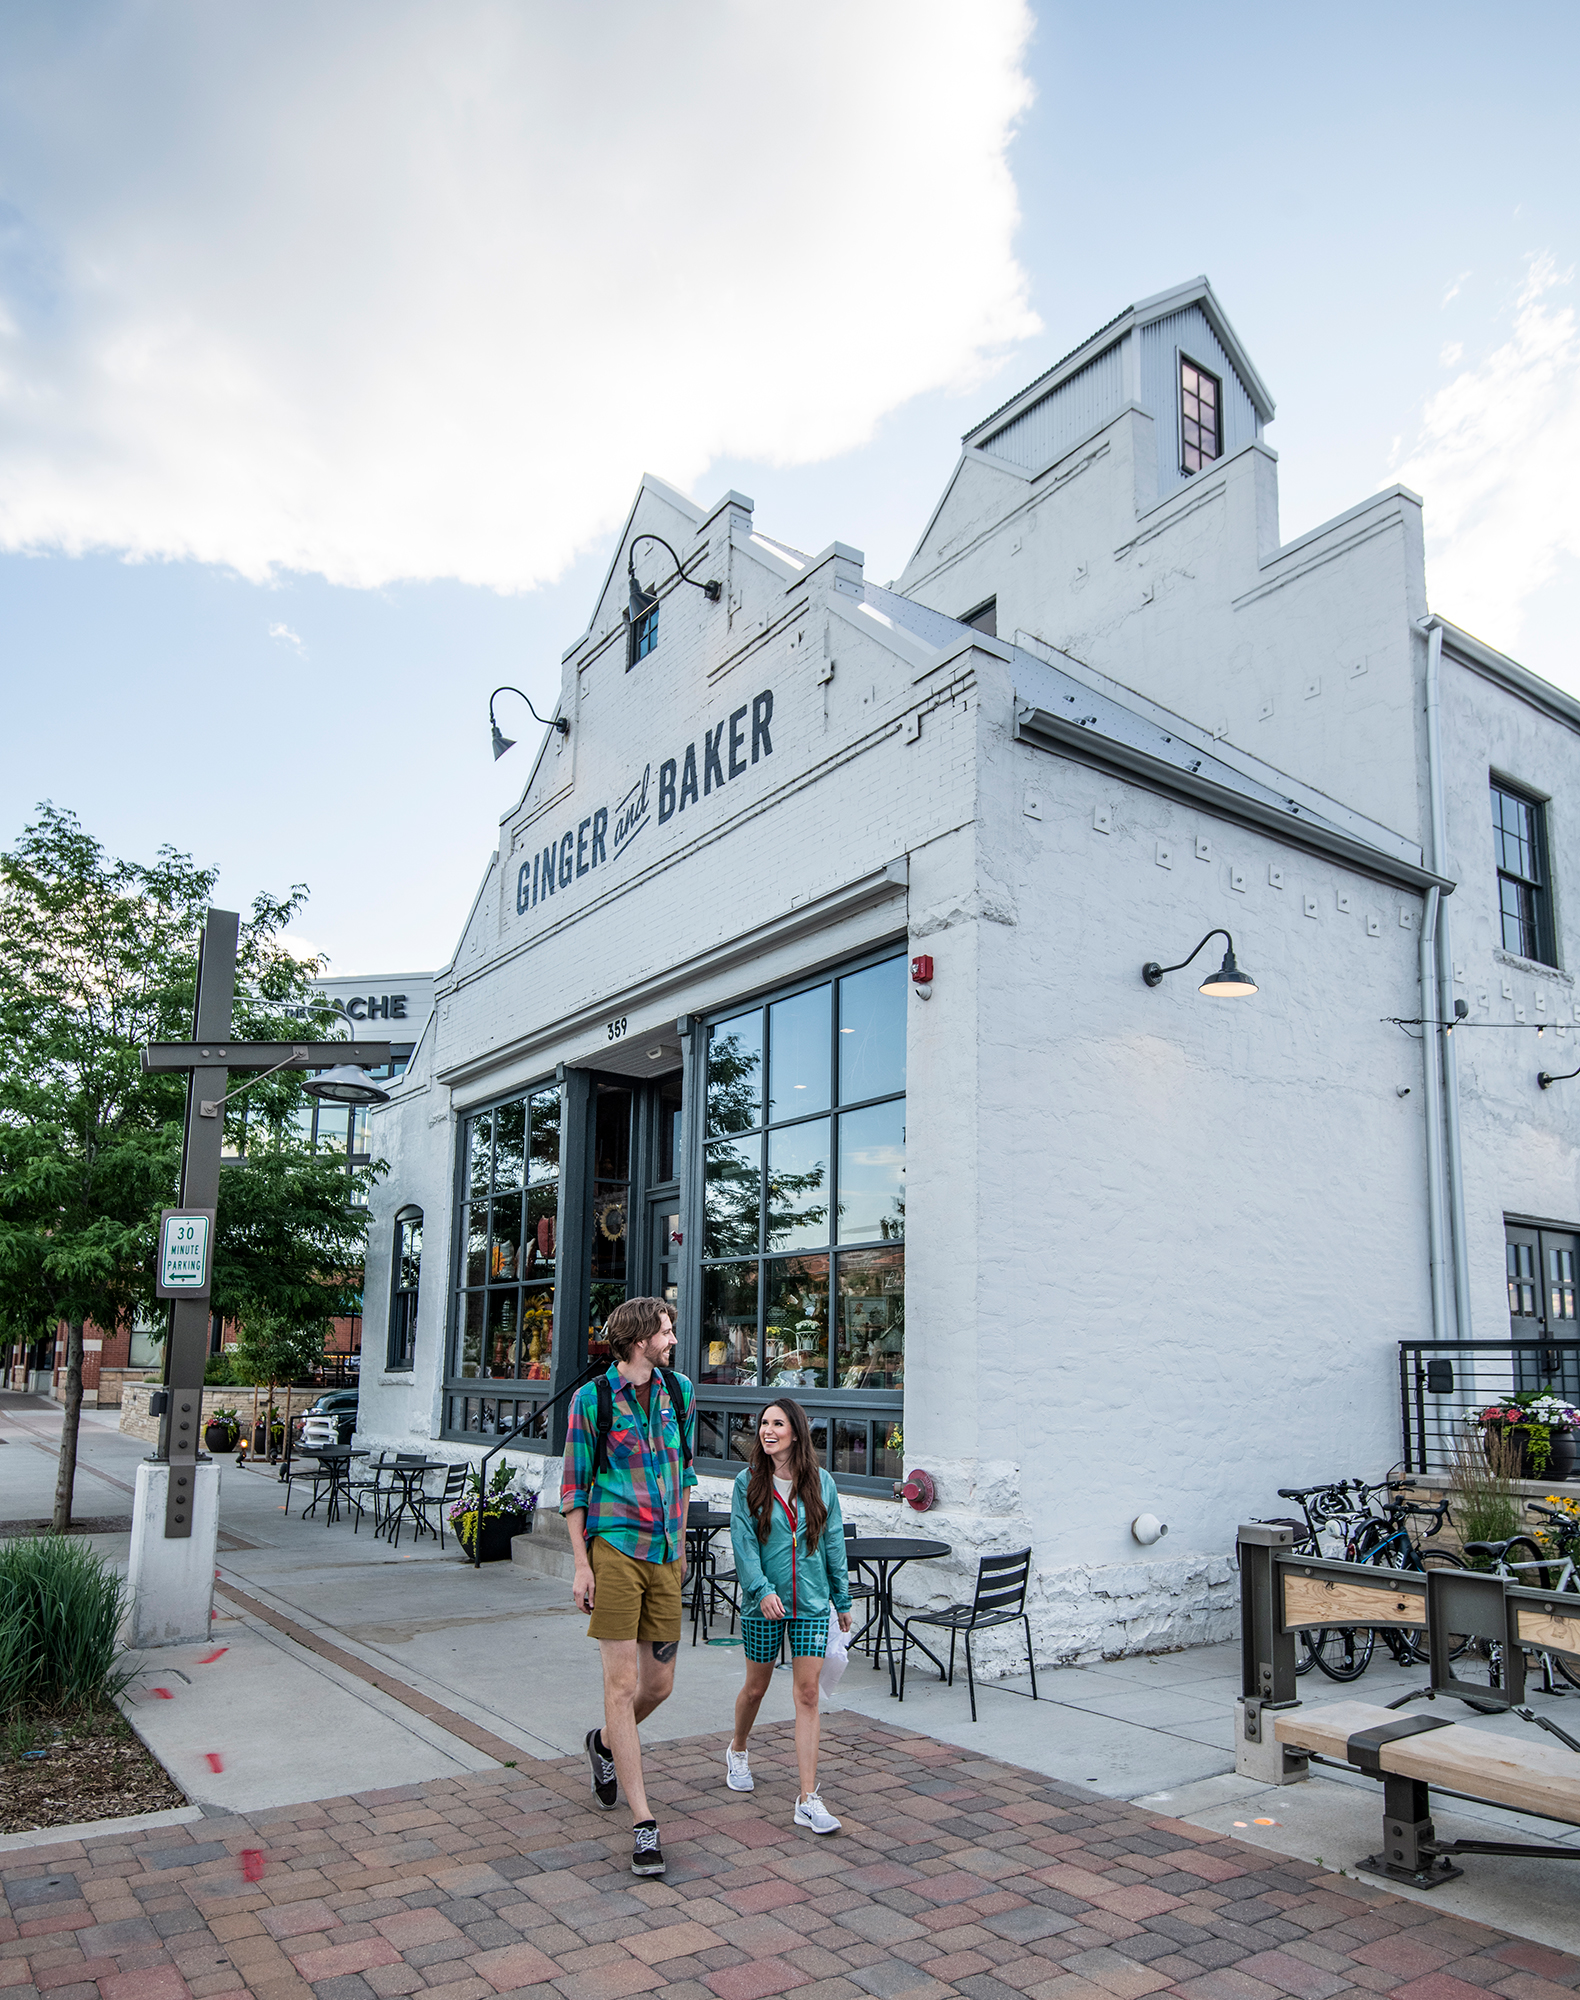 Couple walking in front of Ginger & Baker Restaurant in Fort Collins Colorado